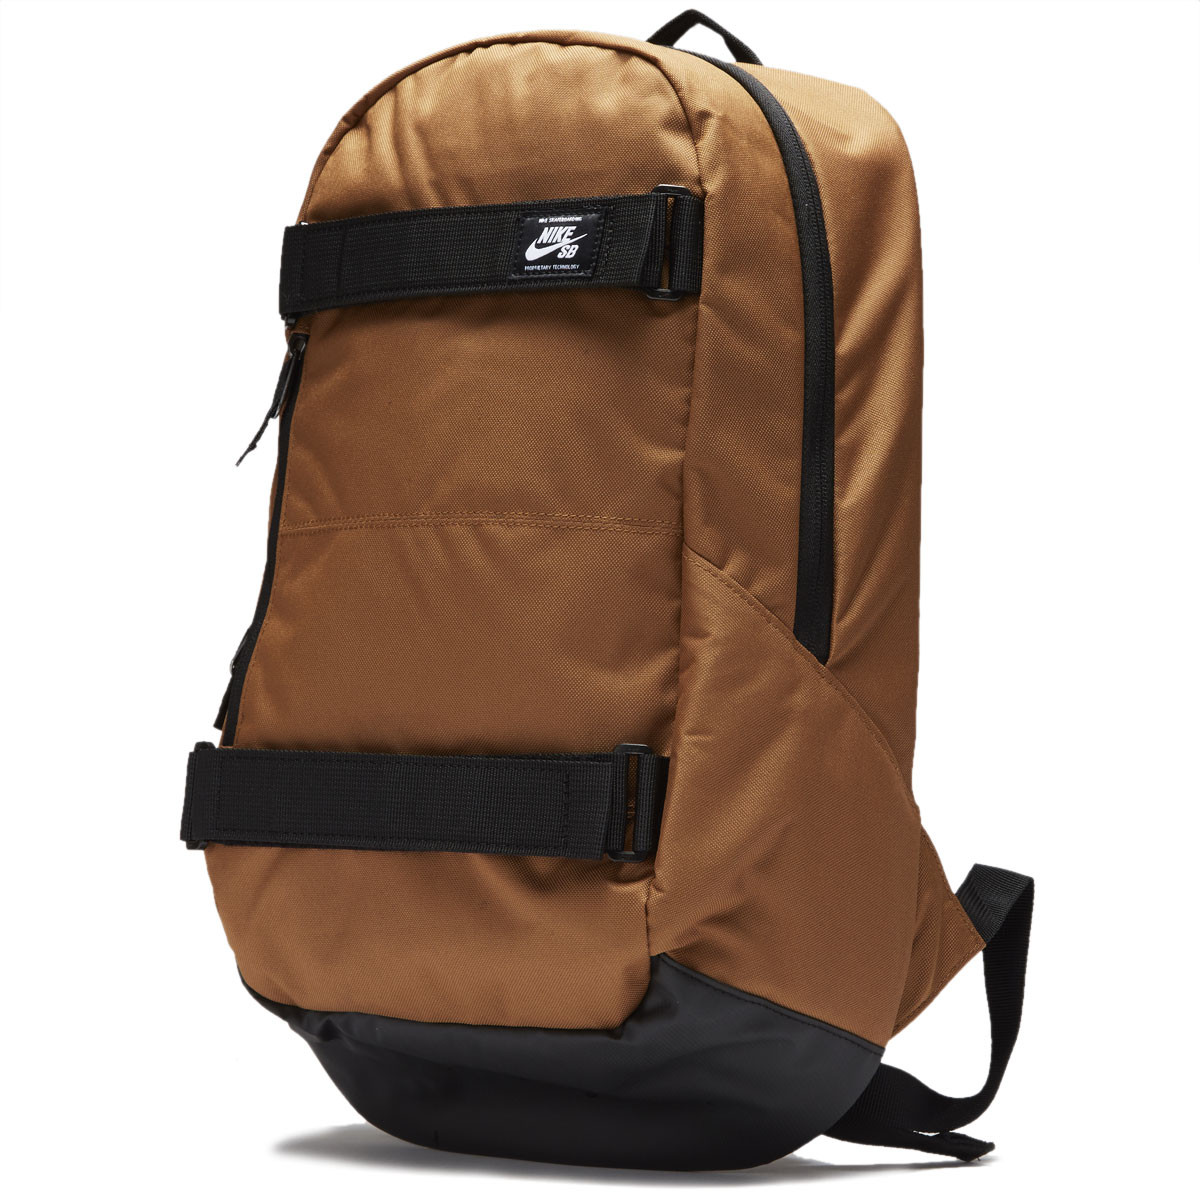 d5046417a55c Nike SB Courthouse Backpack - Ale Brown Black White